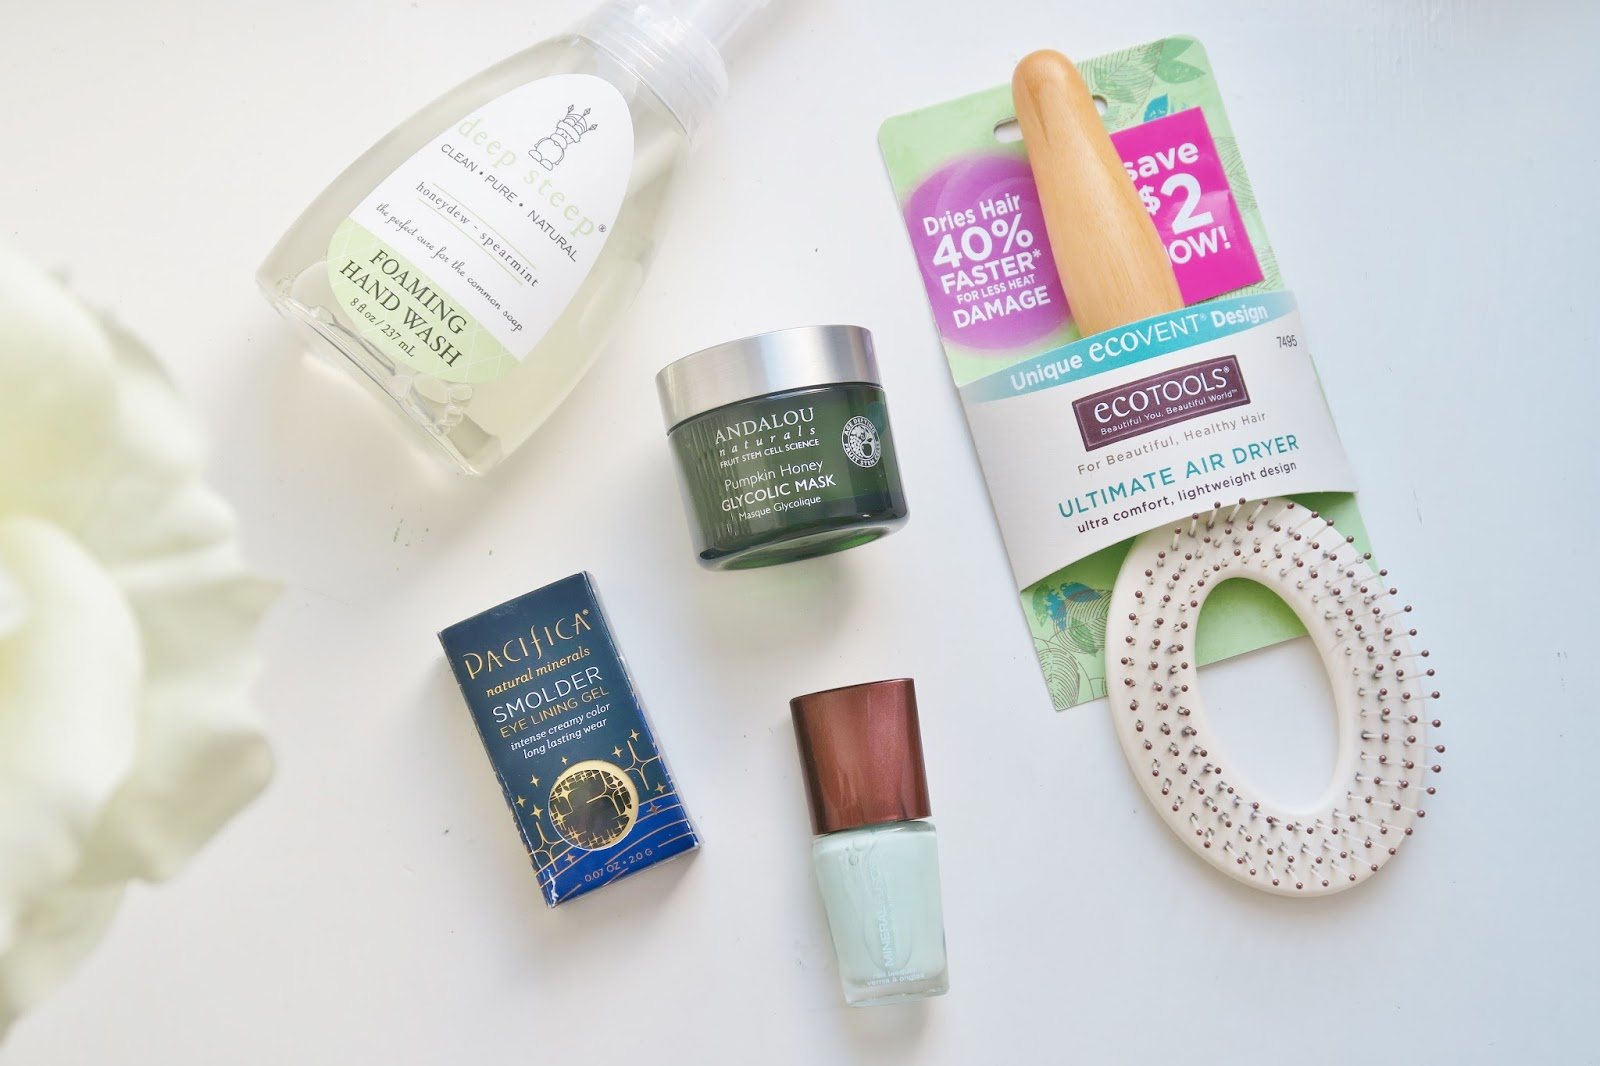 iHerb Haul and $50 giveaway